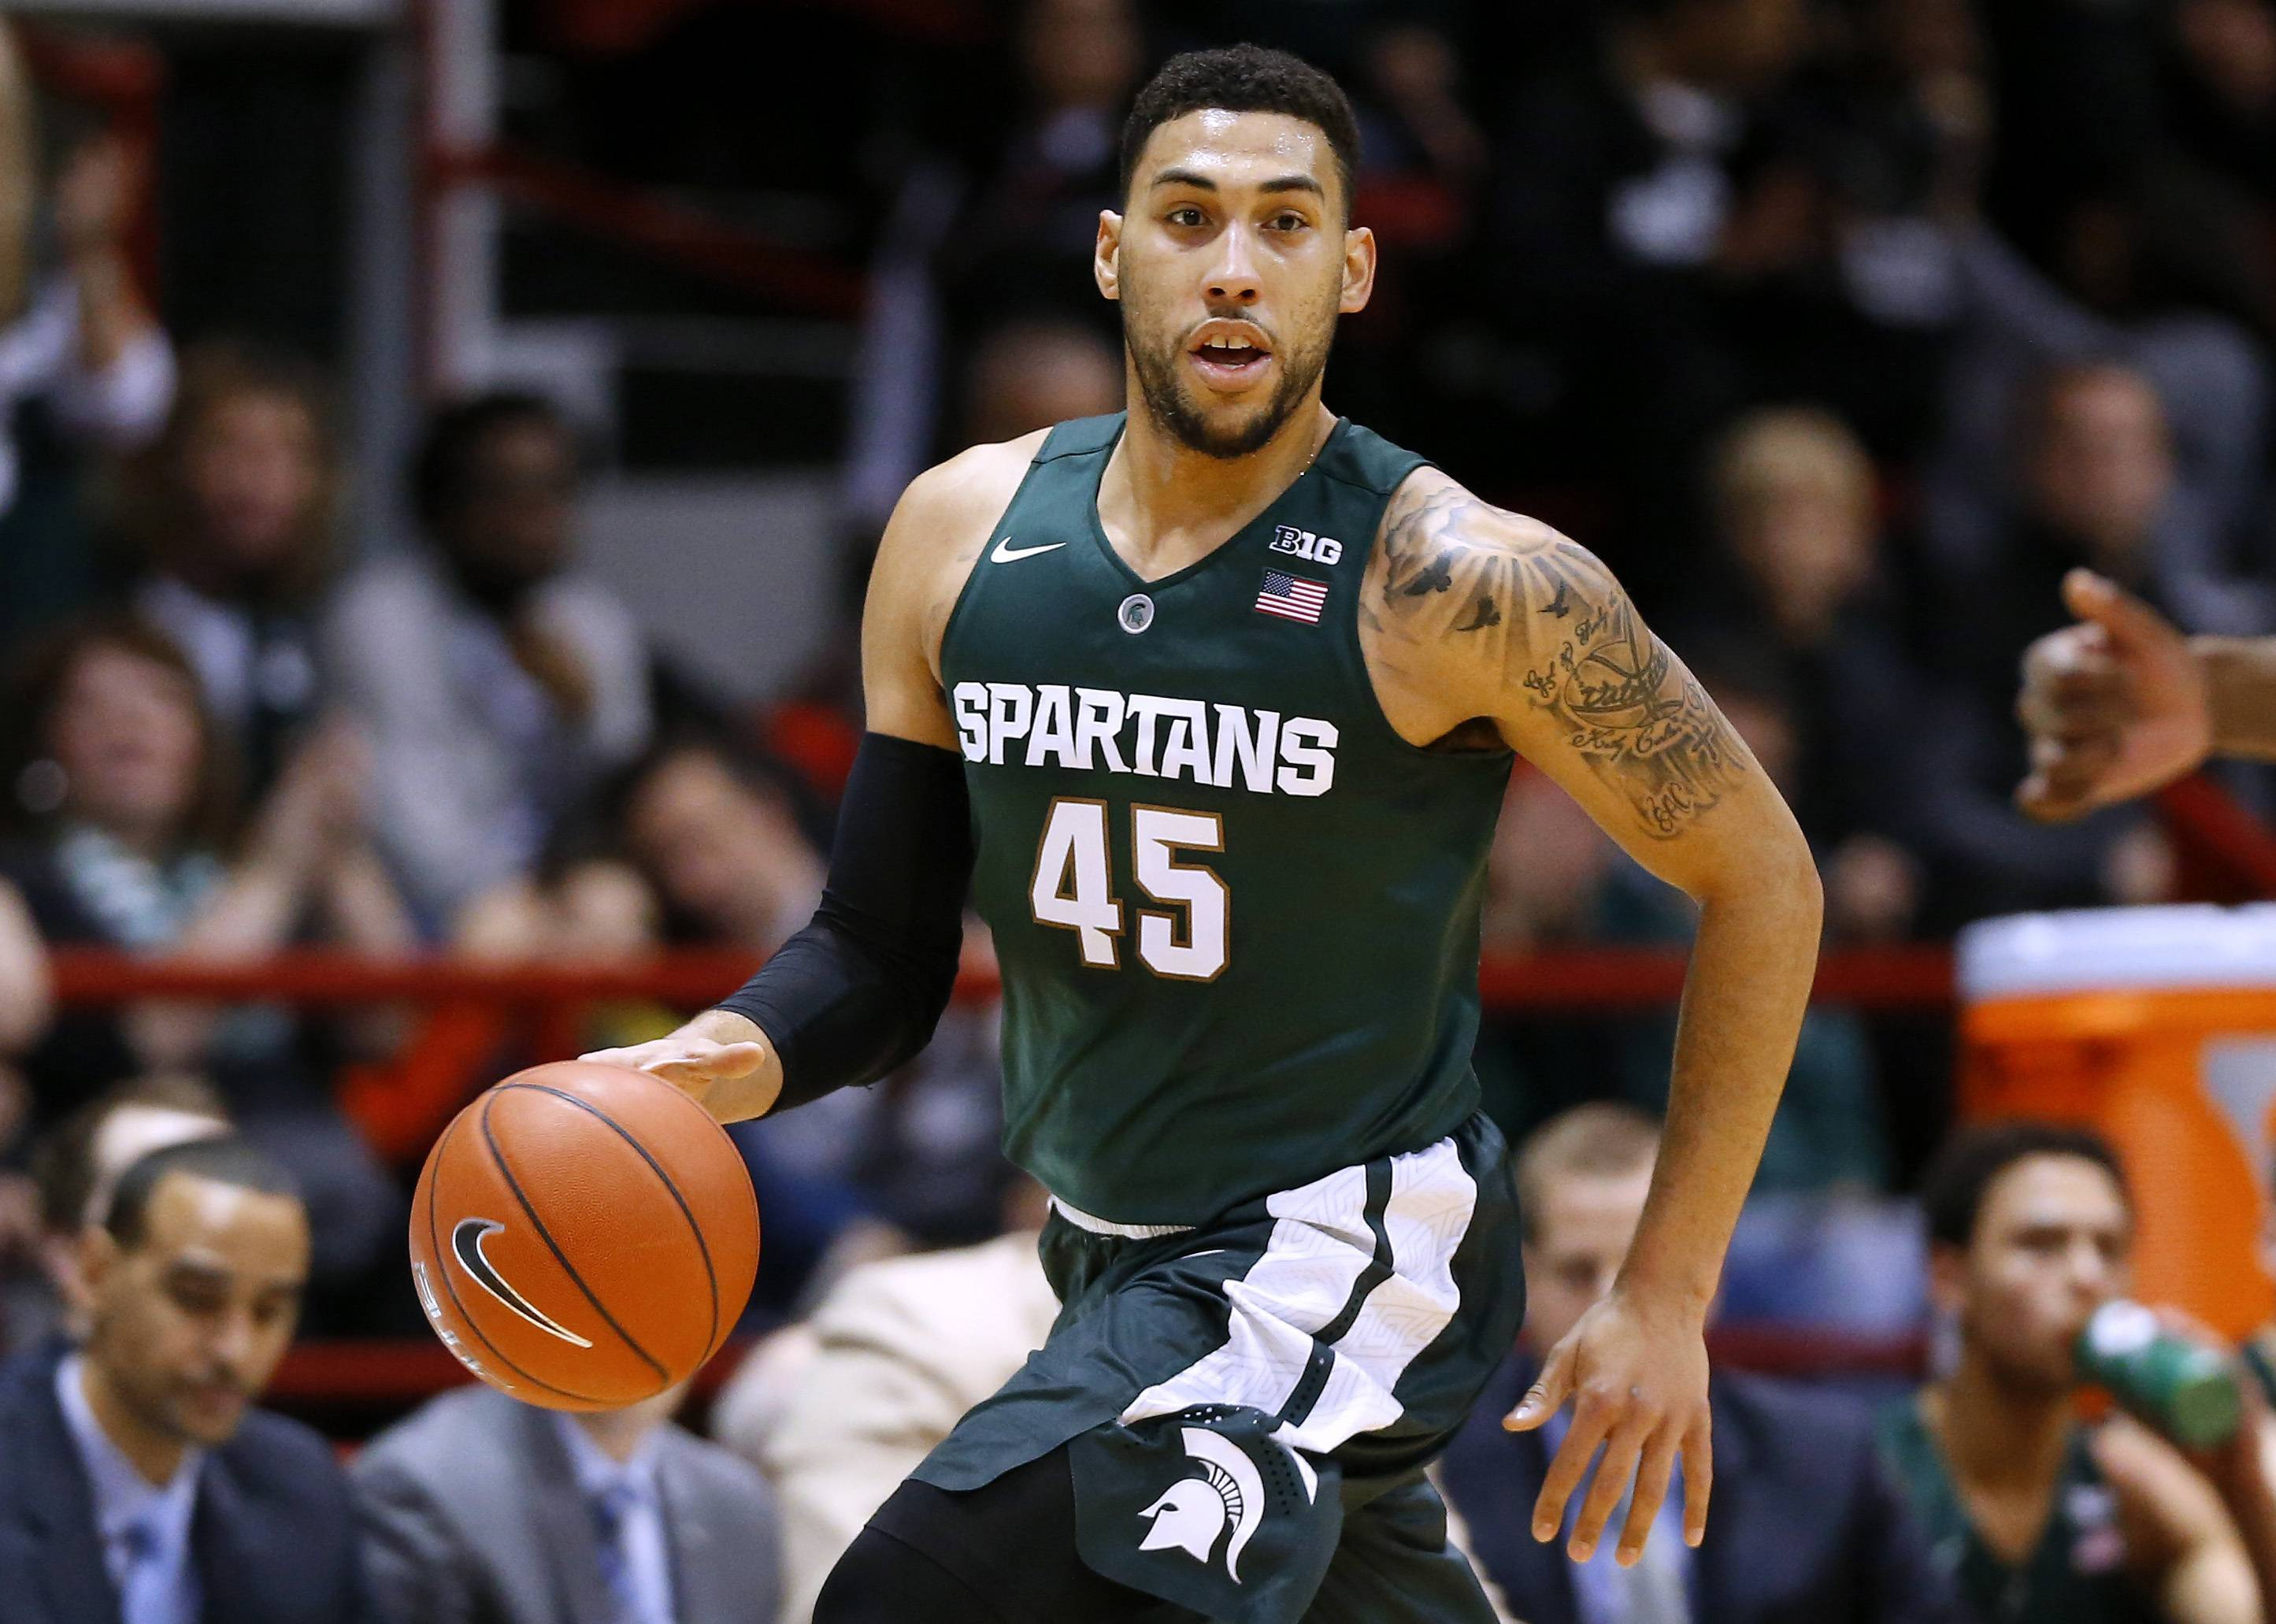 FILE — In this Dec. 19, 2015, file photo, Michigan State's Denzel Valentine brings the ball upcourt during an NCAA college basketball game against Northeastern in Boston. Valentine worked out for the Utah Jazz just under two weeks ago and that was the first of four scheduled workouts, along with the Bulls, Bucks and Magic. The Michigan State guard explained that his agent had identified the Jazz as a potential landing spot. He's expected to go anywhere from late lottery to the late 20s. (AP Photo/Winslow Townson, File)